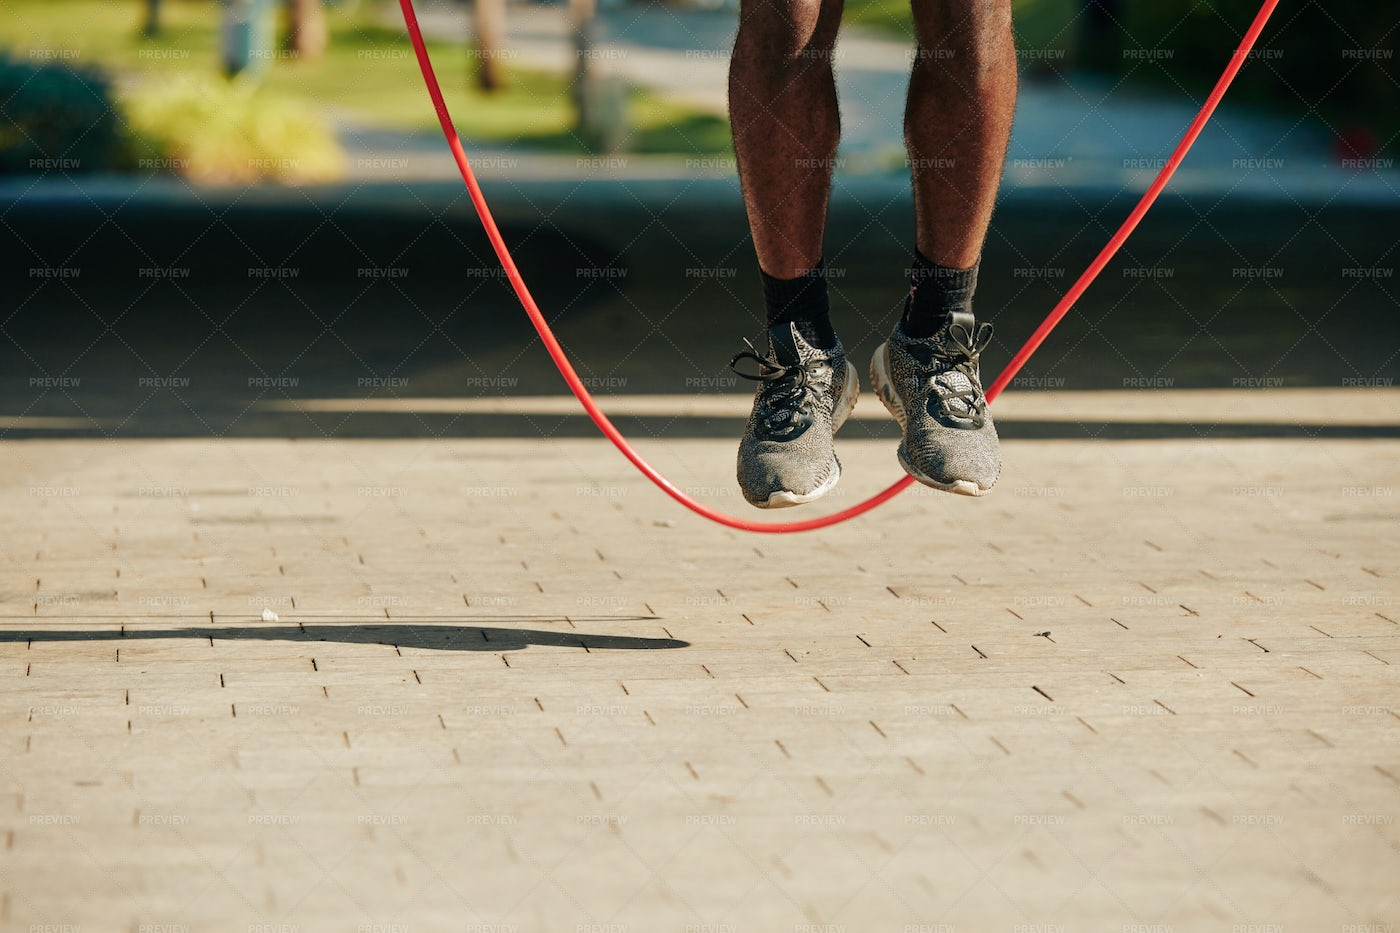 Jumping With Skipping Rope: Stock Photos